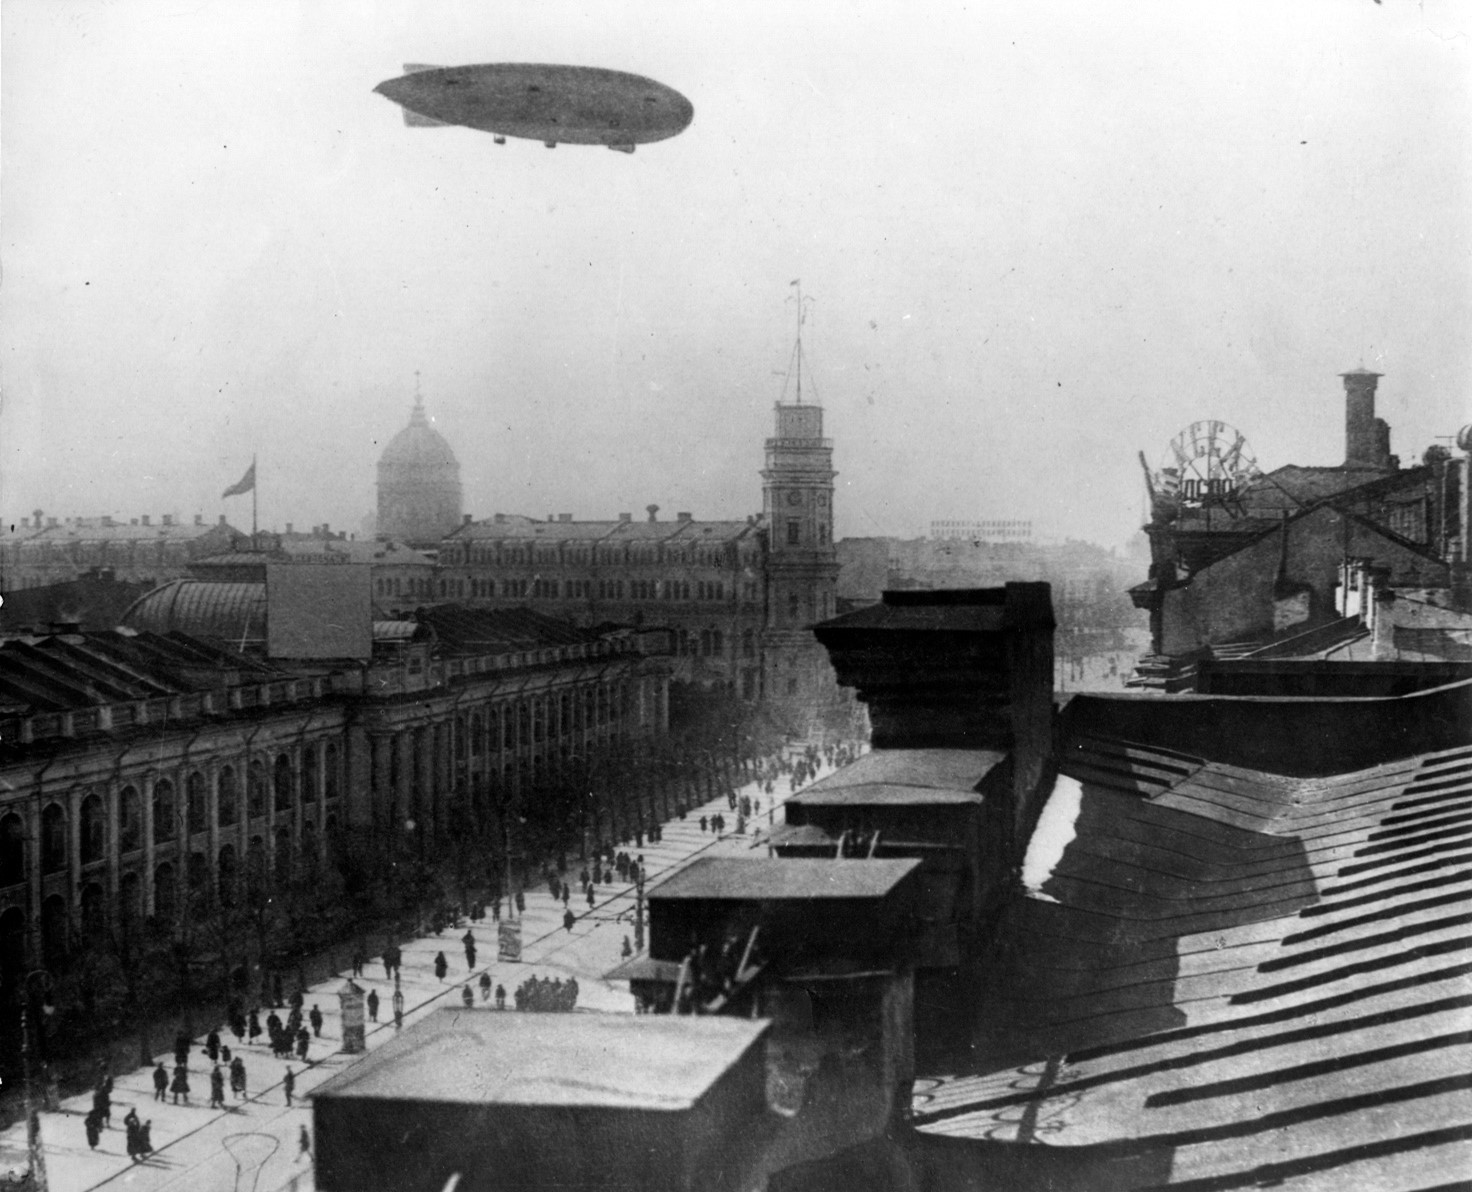 95 years ago – May 5, at 10:34 (local time)